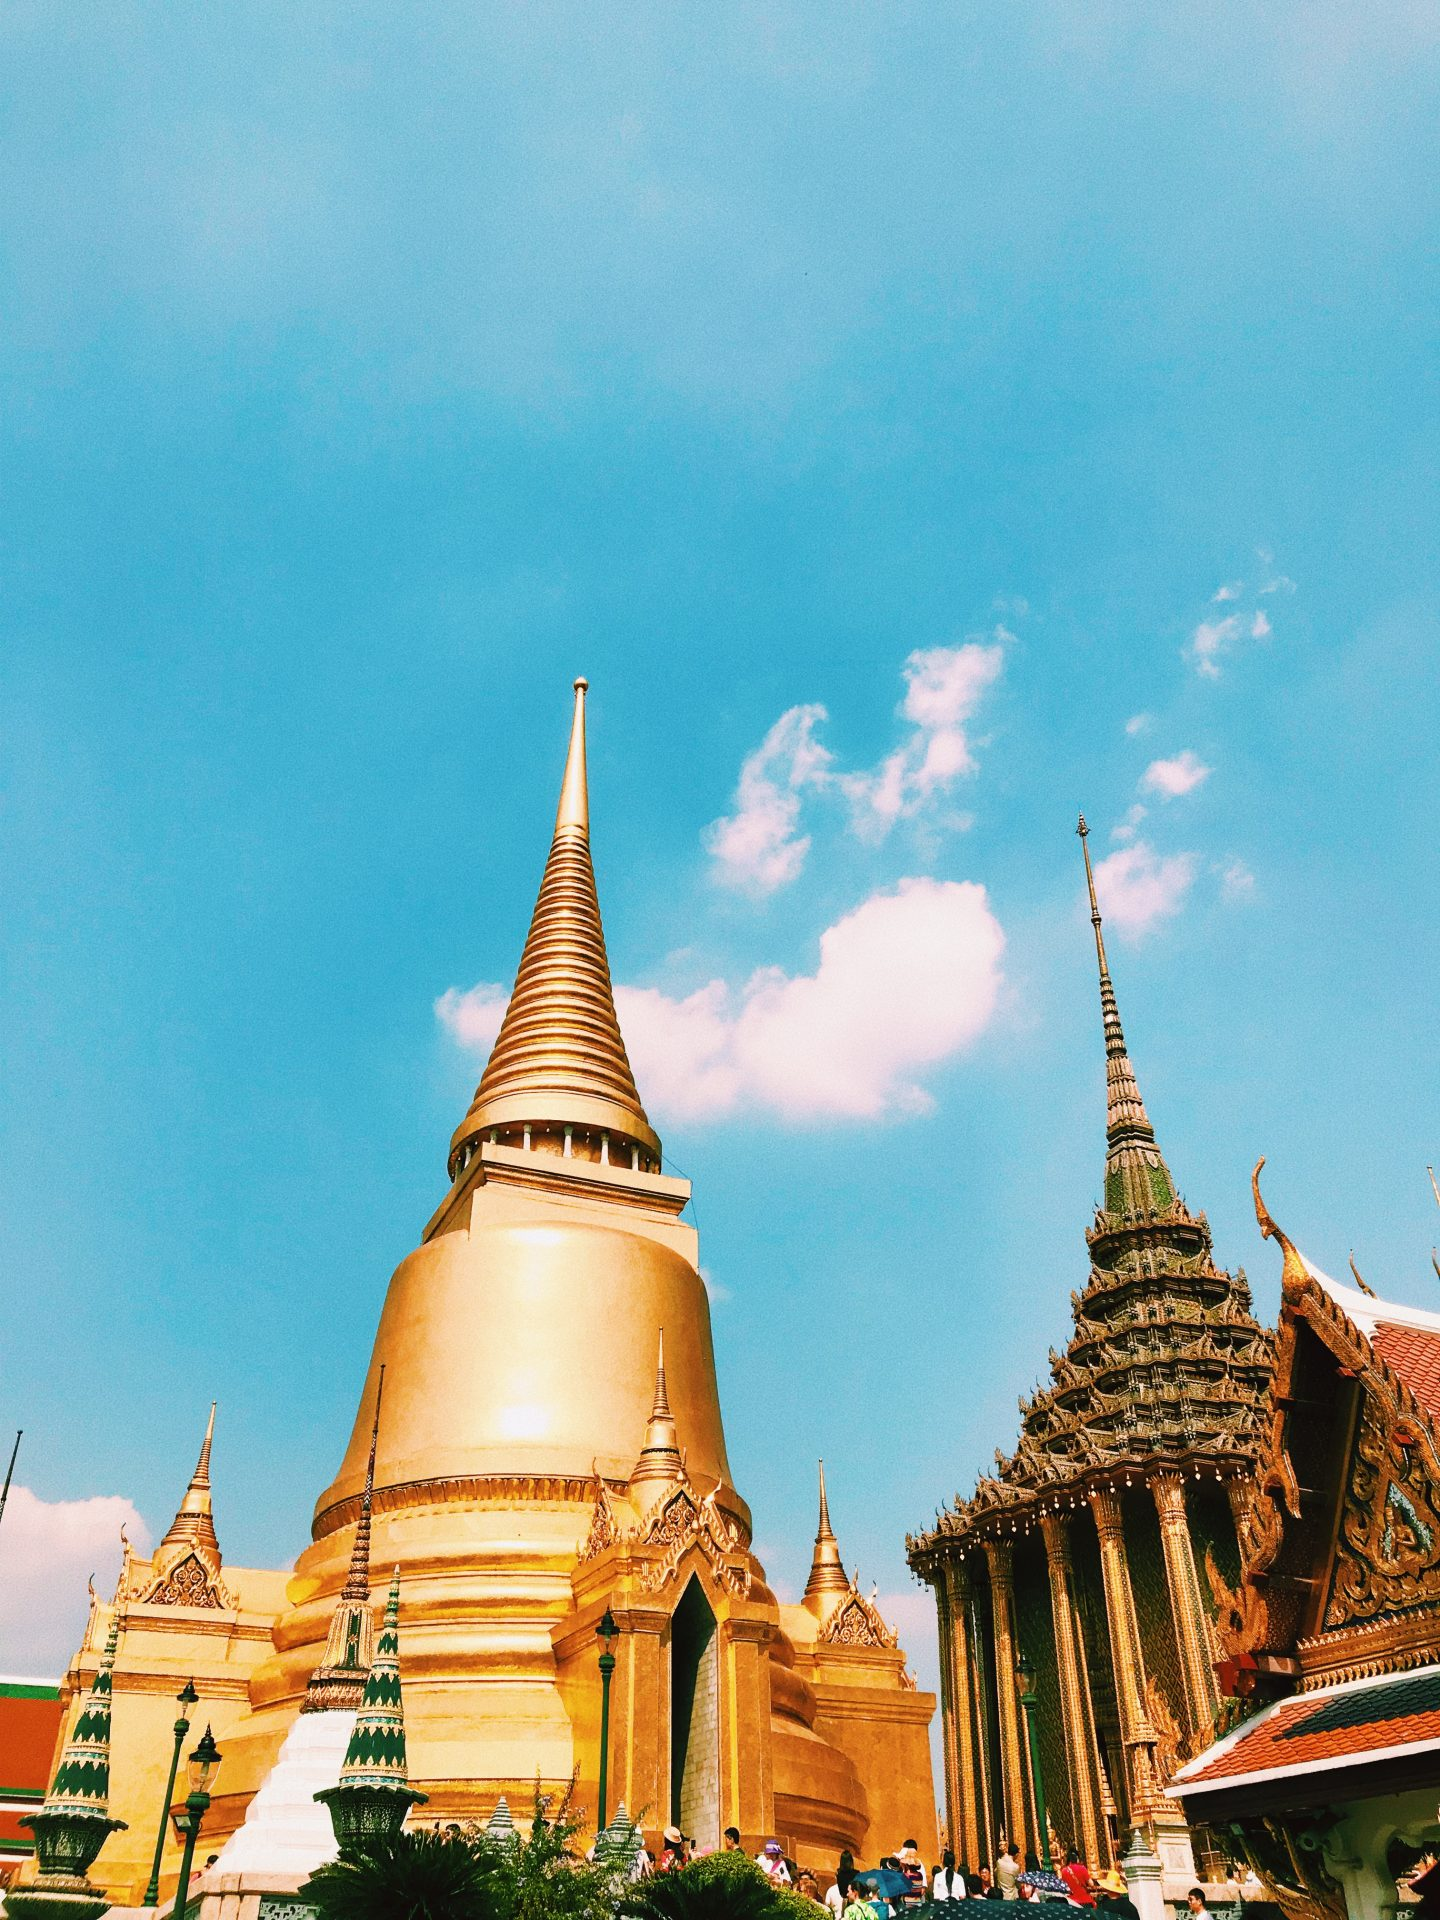 the grand palace in thailand